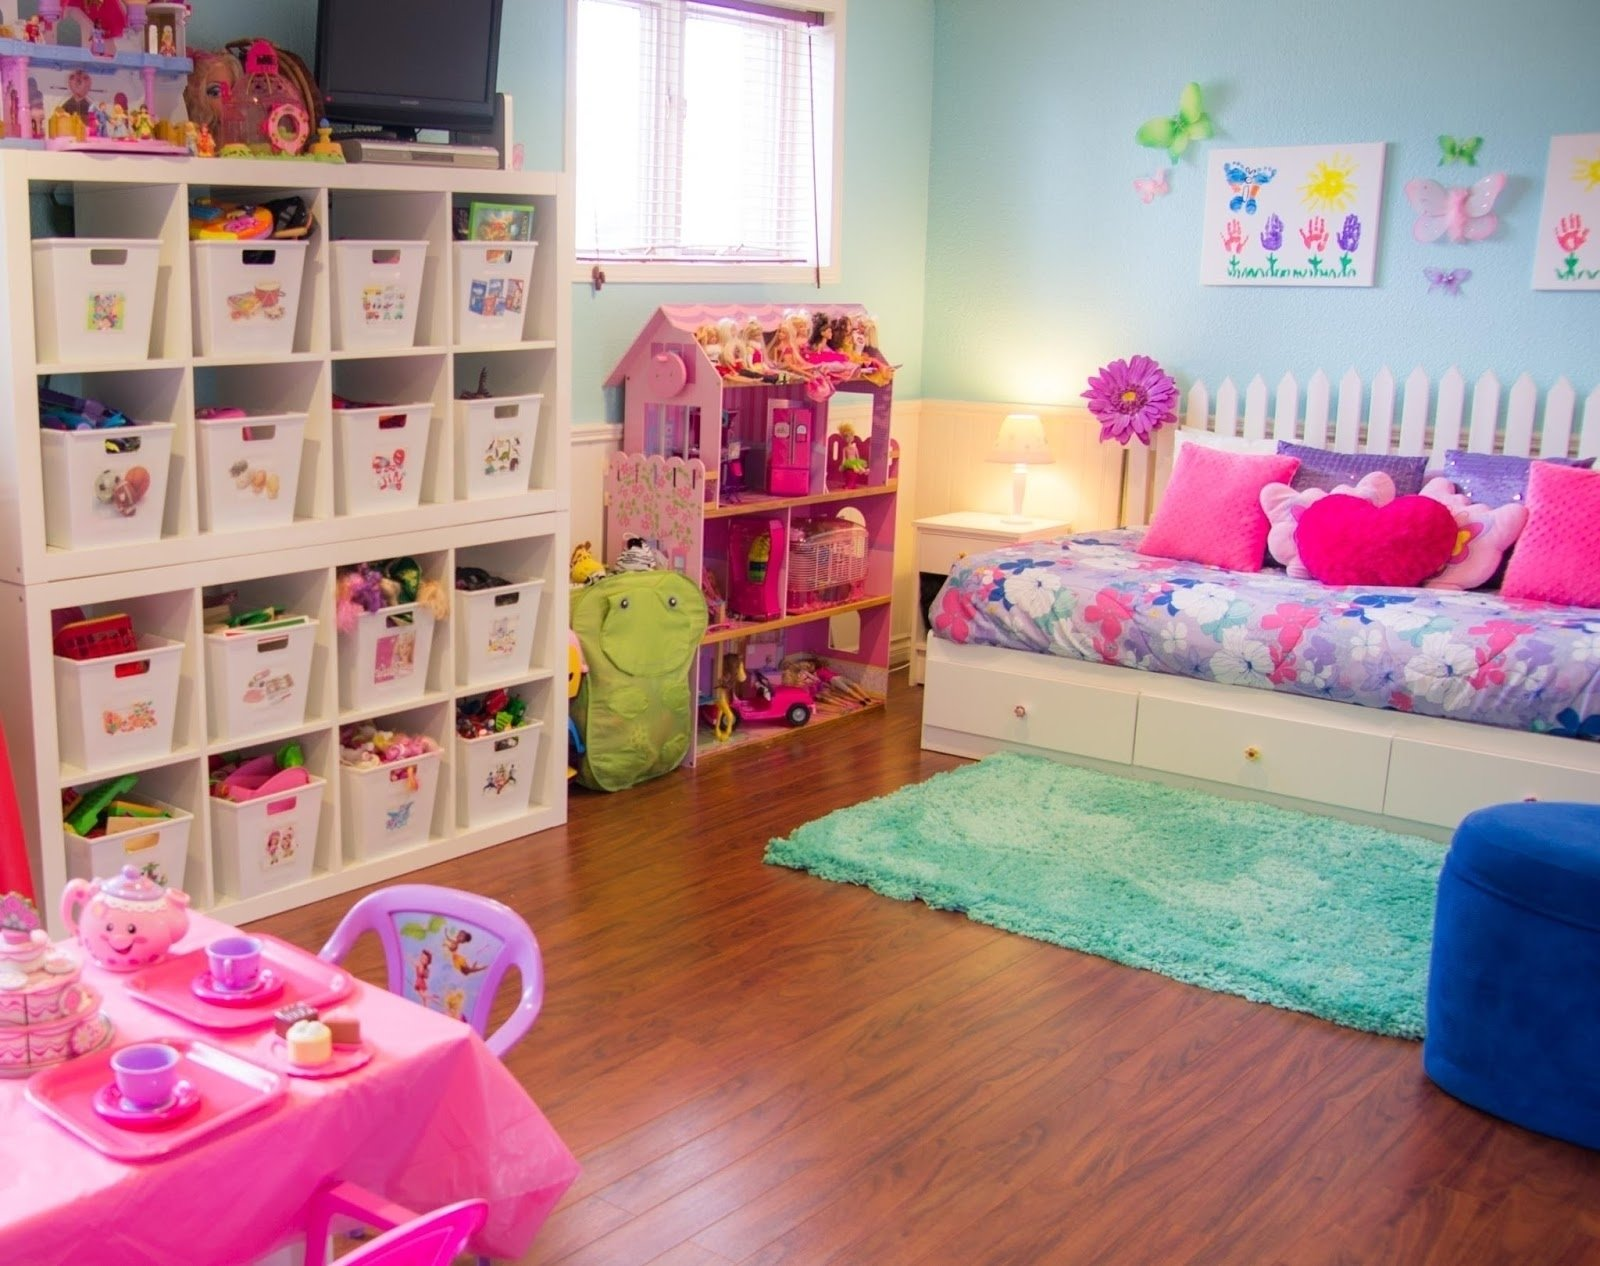 10 Stylish Storage Ideas For Kids Rooms how to organize kids room organize kids room when it is small for 2020